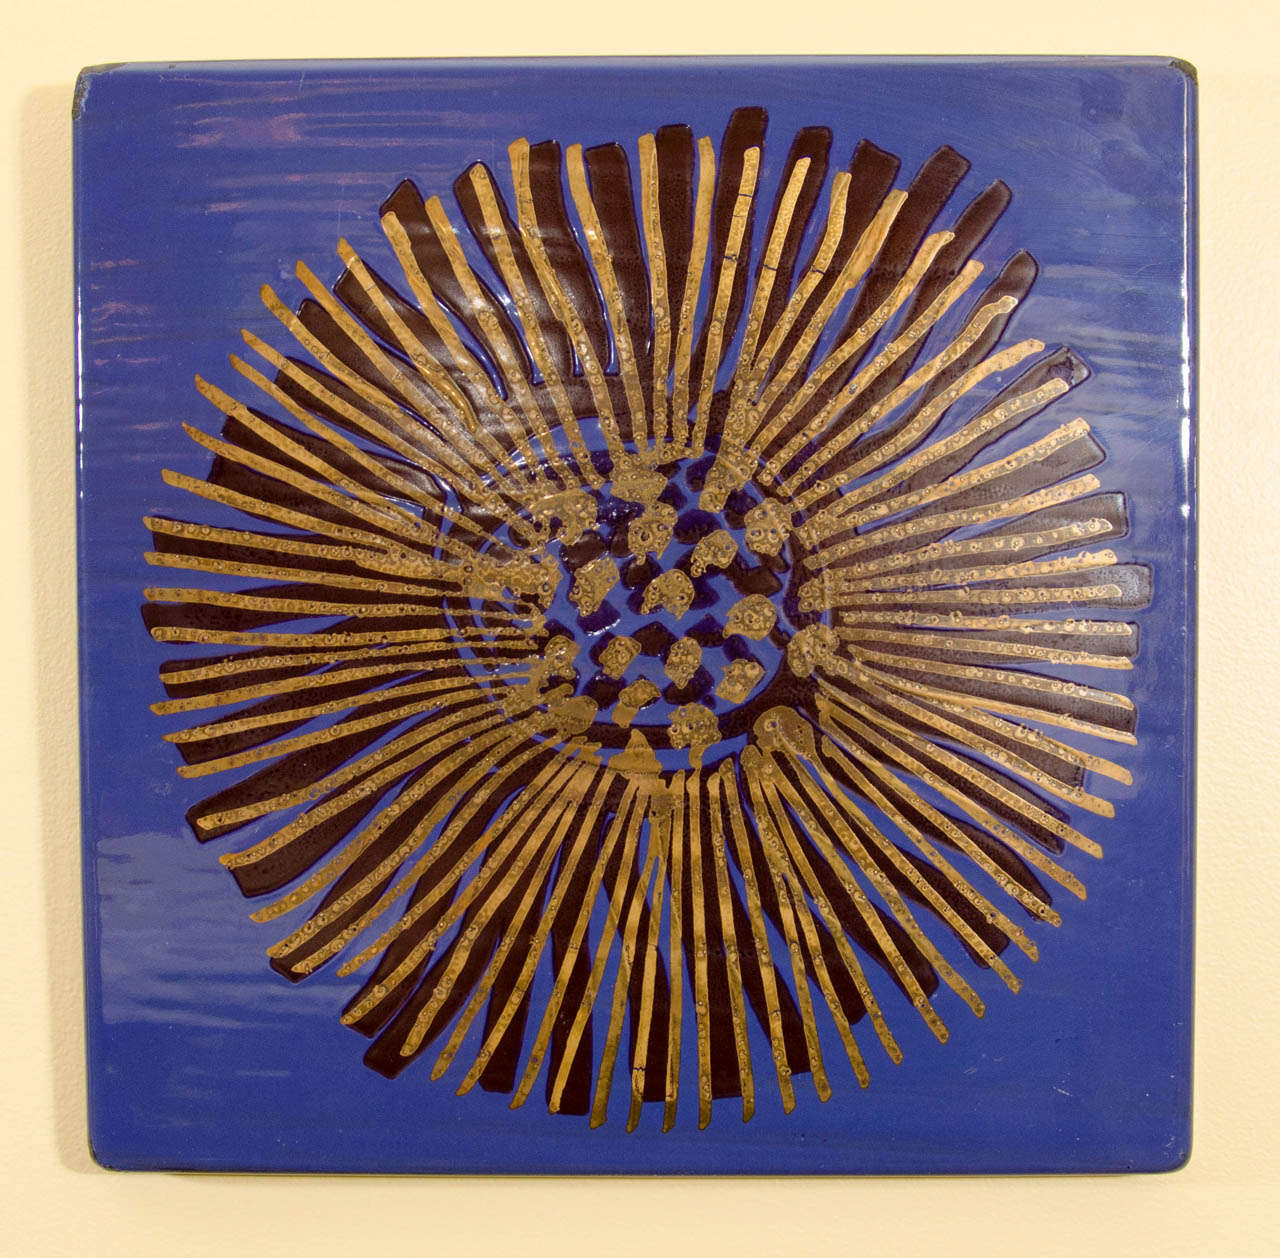 Charming and fun blue enameled wall art by Gustavsberg. We also have a companion piece in red. Please contact for location. Offered by Las Venus by Kenneth Clark, New York City.